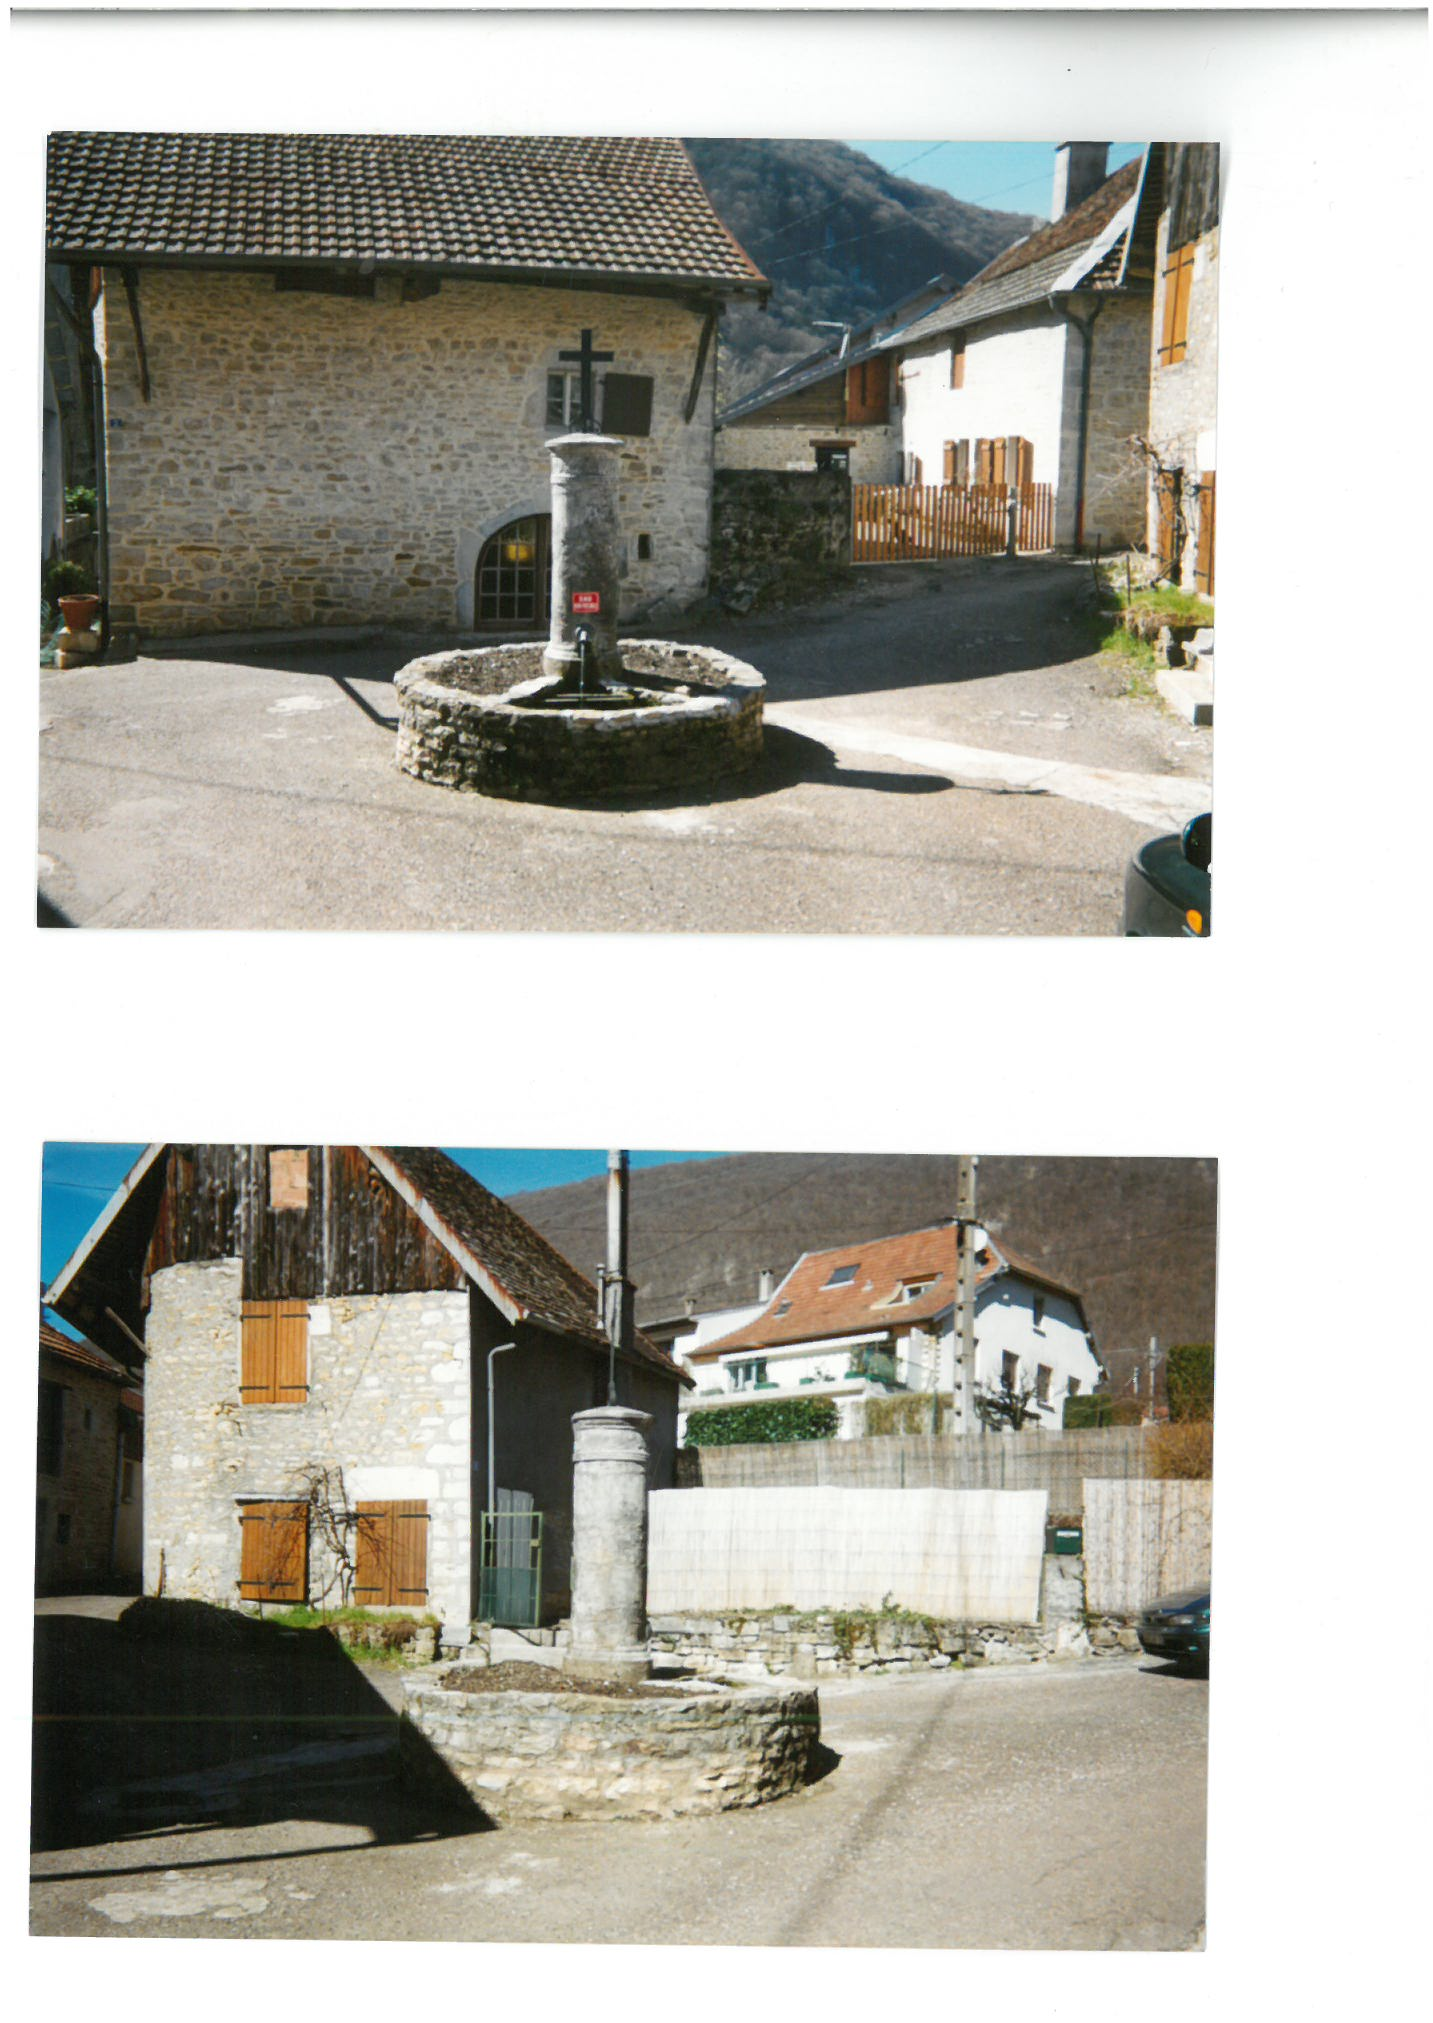 fontaine-photos-avant-travaux-2006